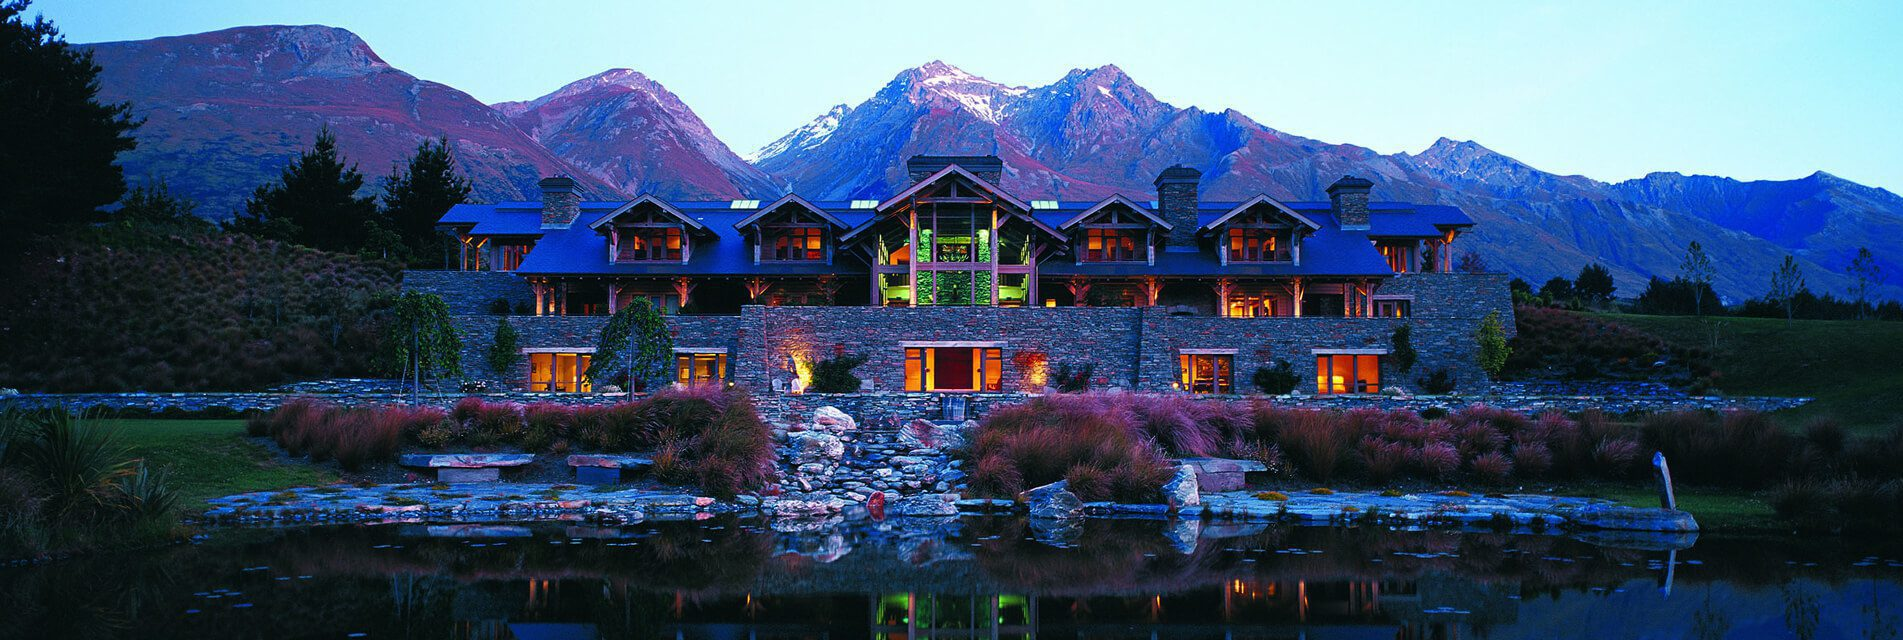 blanket bay lodge in glenorchy with lake wakatipu in front and the mountains behind